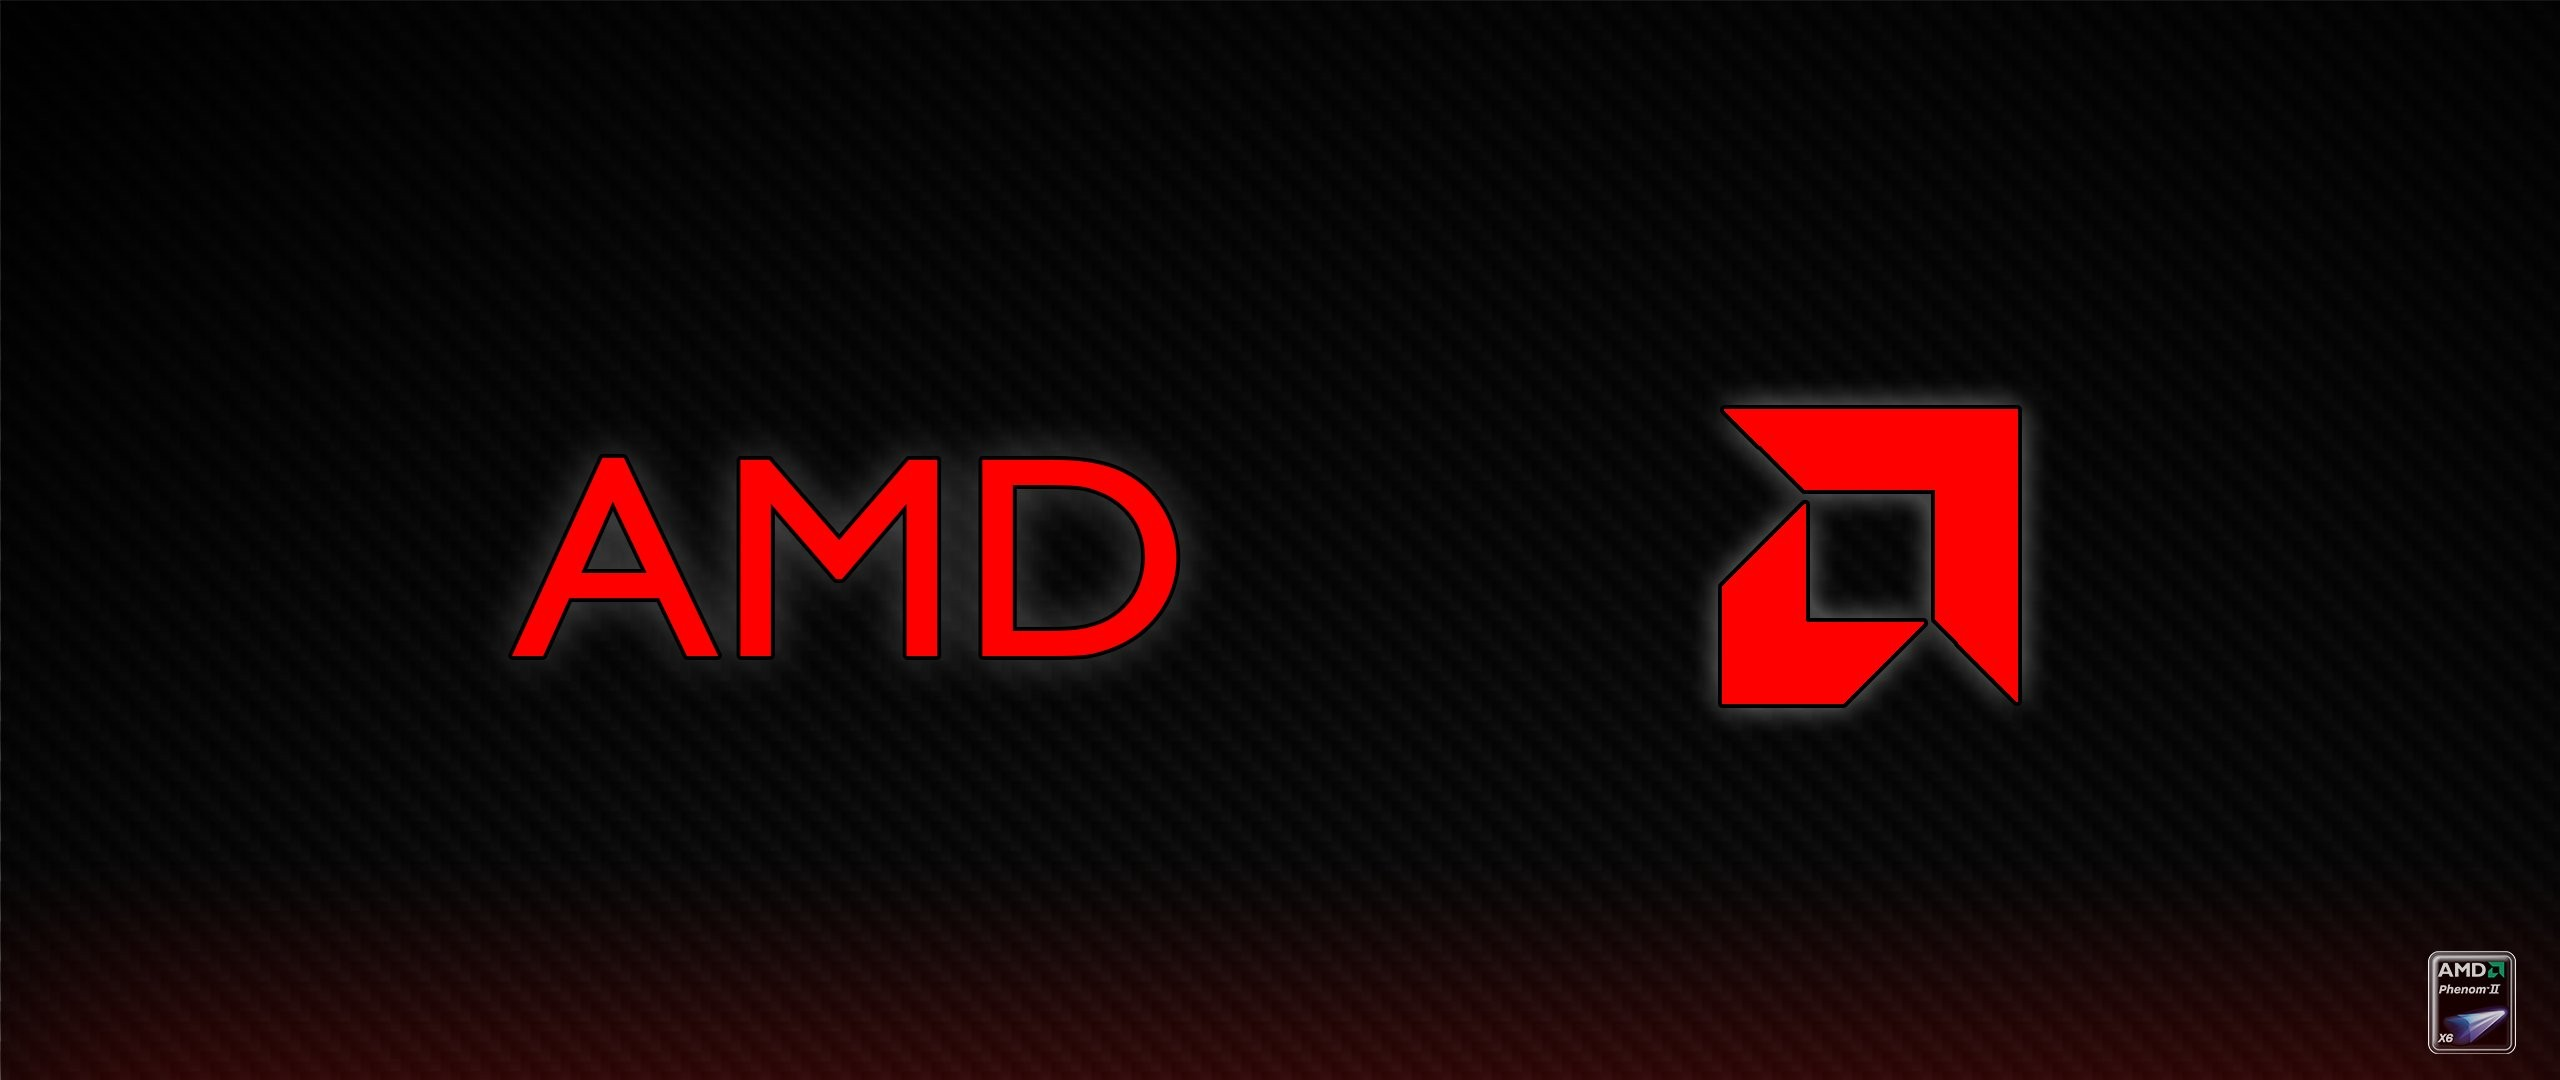 amd fx background by - photo #30